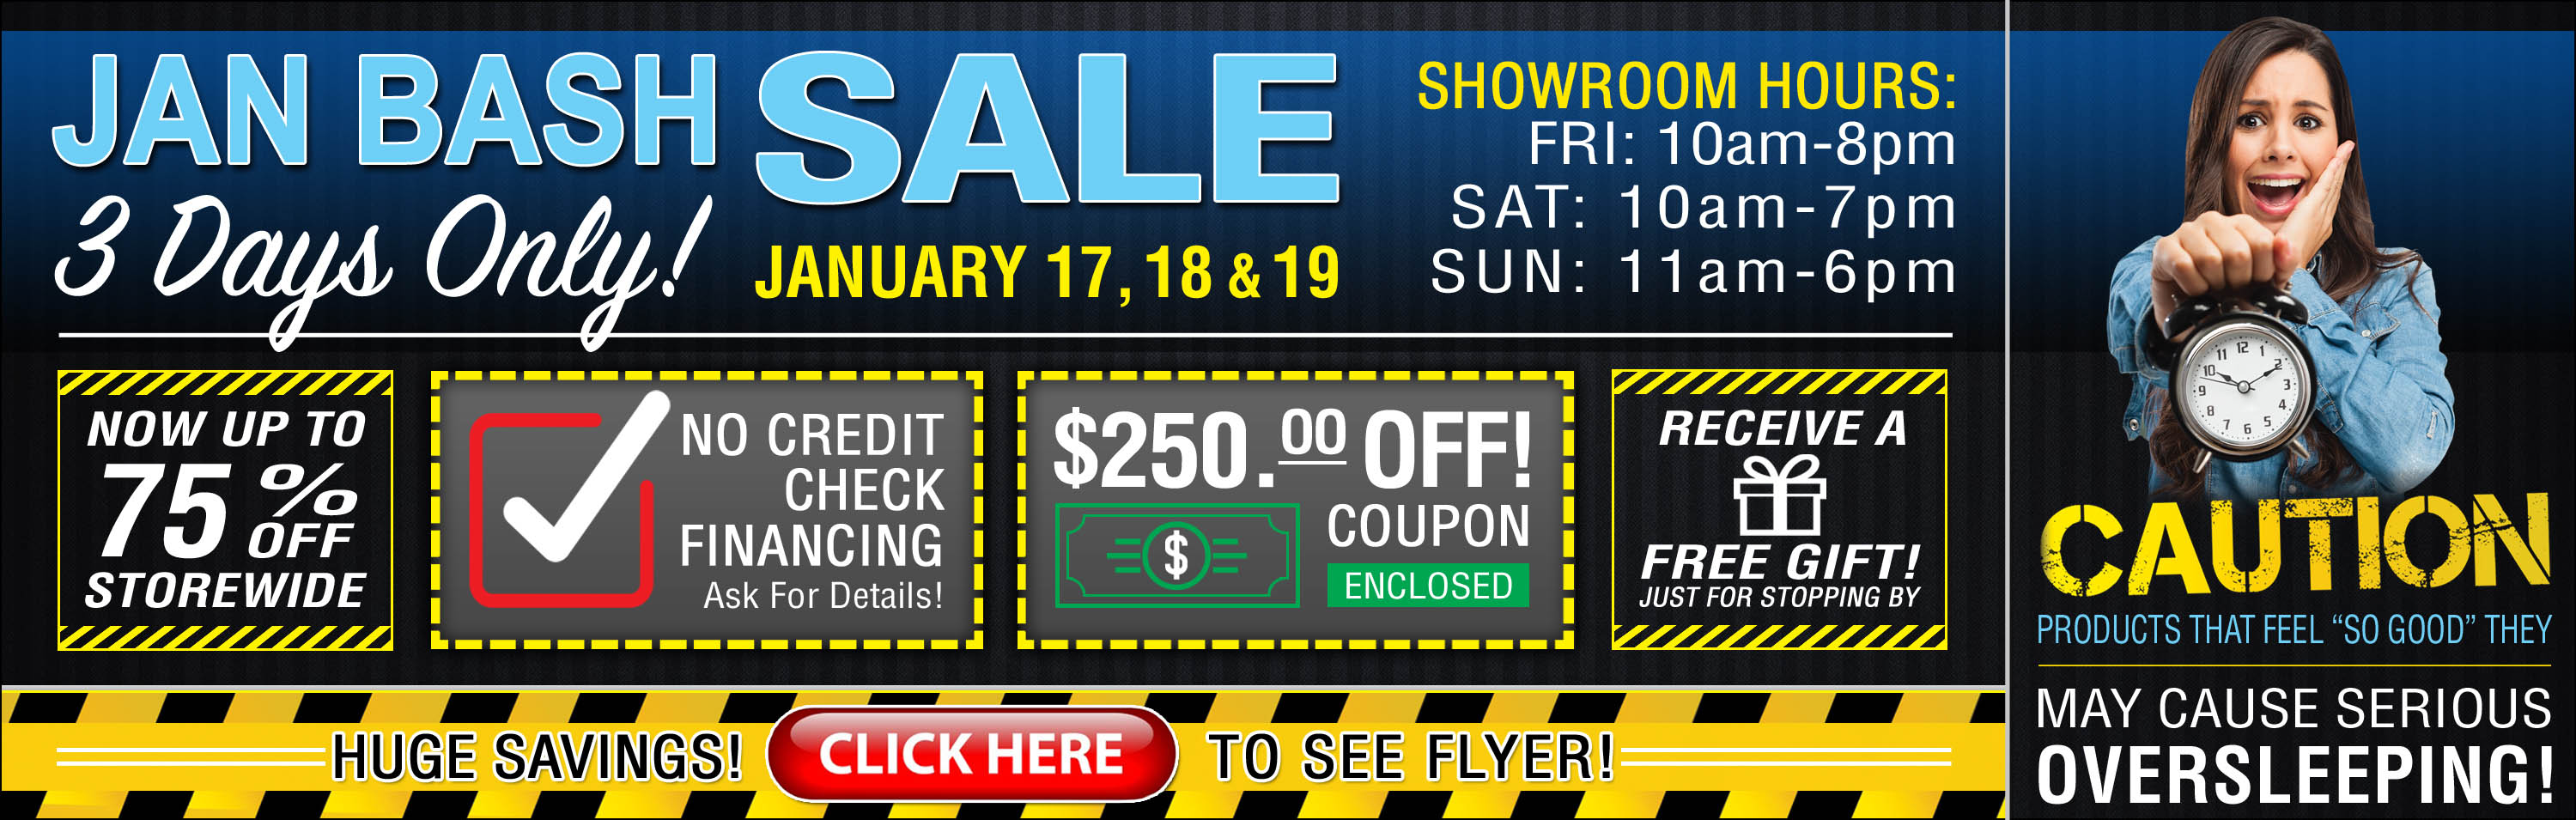 InnoMax Jan Bash Sale Going On Now Stop By To Save Big On Everything You Need For The Bedroom Slide 2